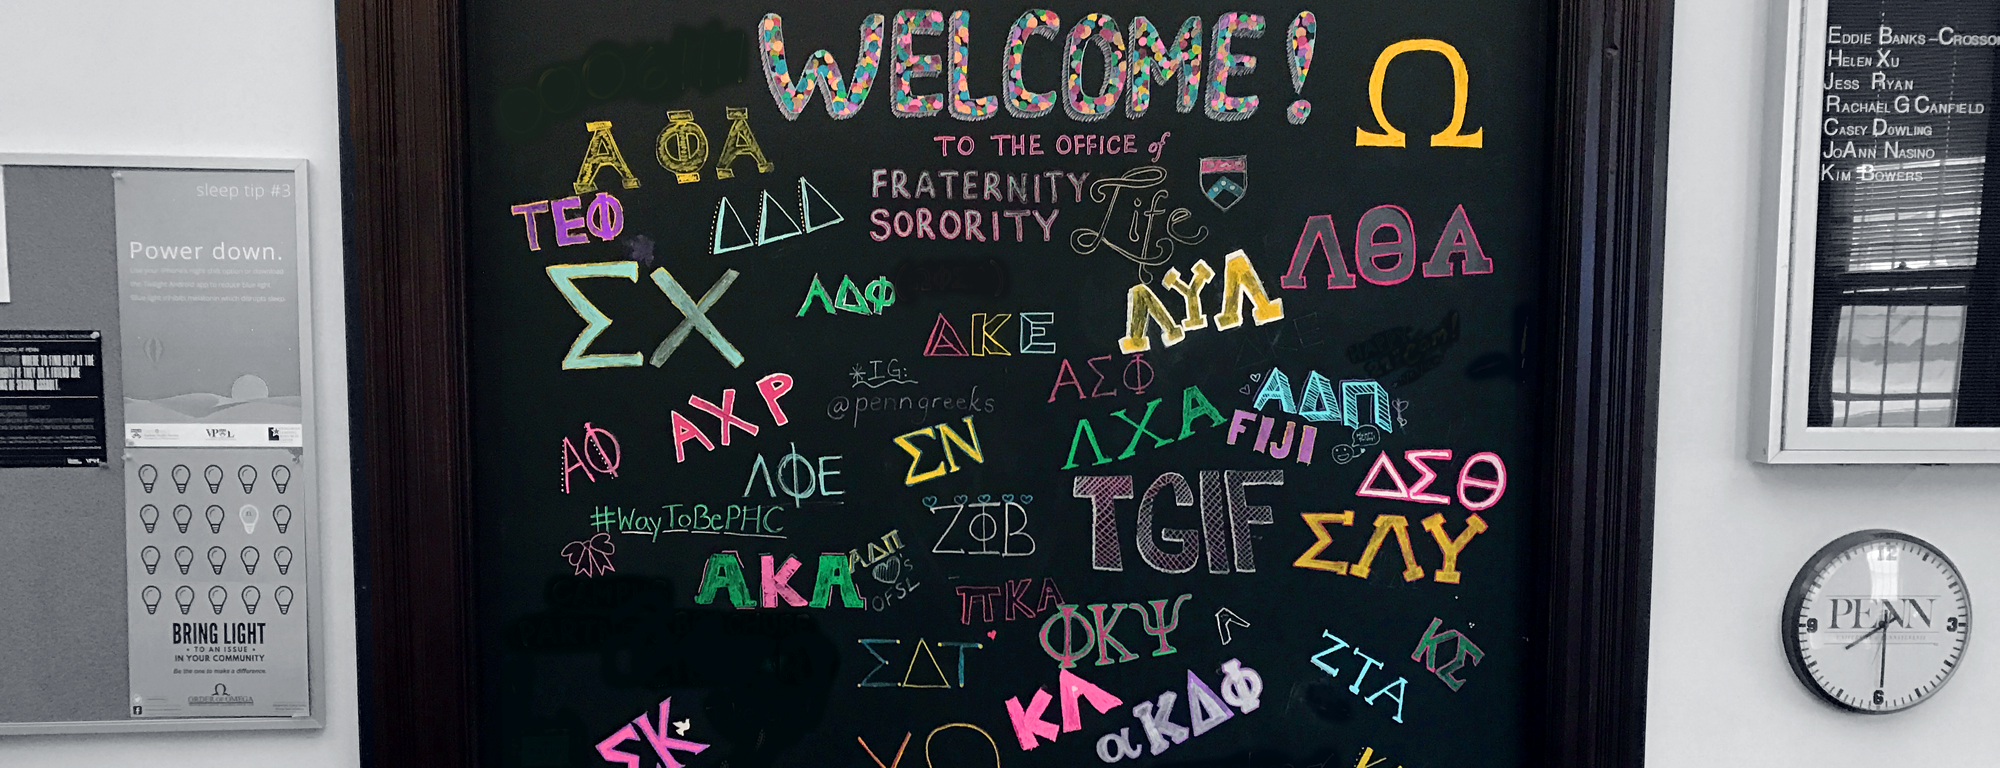 Office of Fraternity and Sorority Life - Chapters at Penn